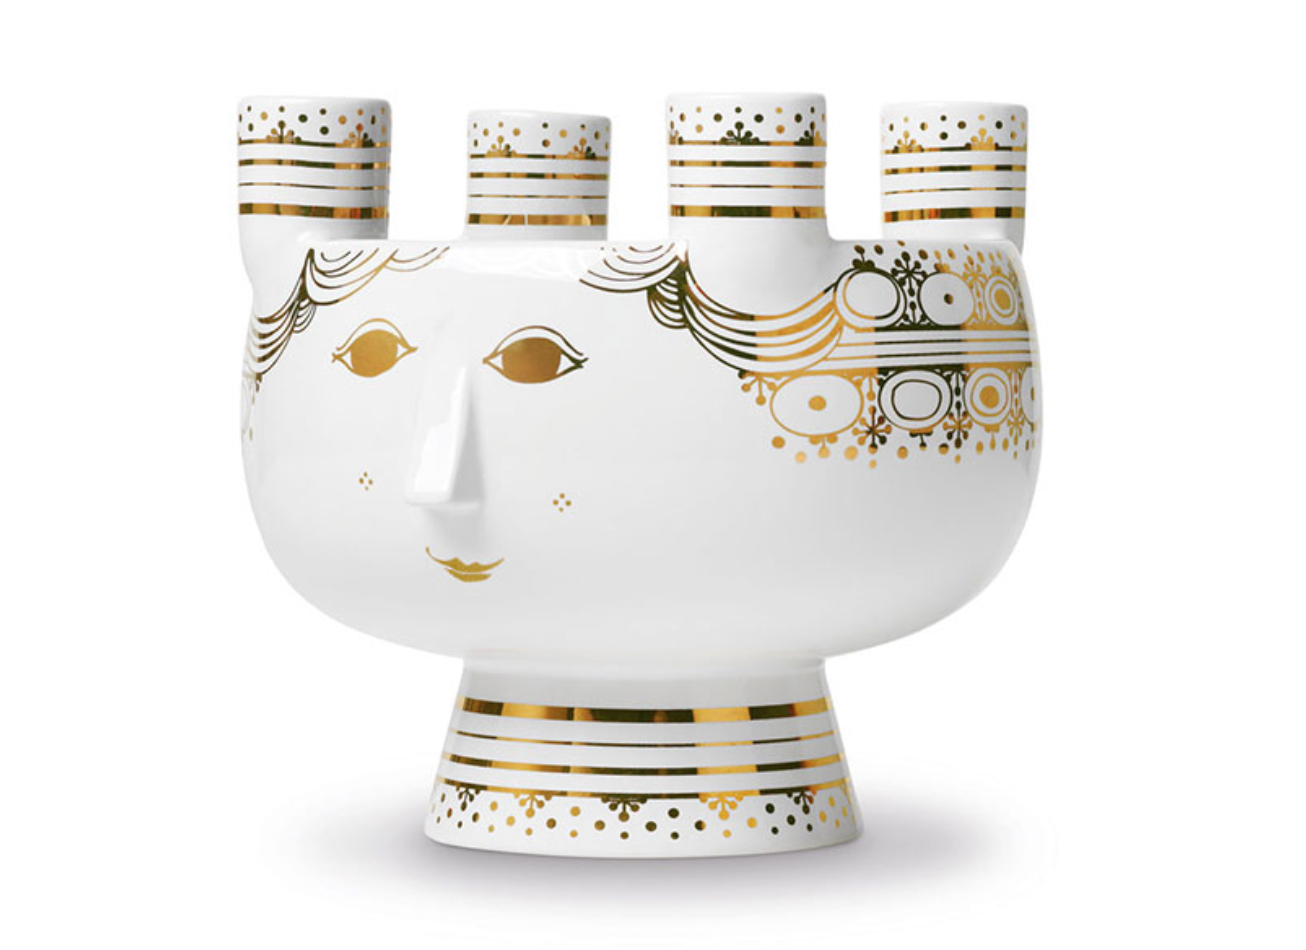 The 'Lucia' ceramic Advent candle holder and bowl, designed by Bjorn Winblad